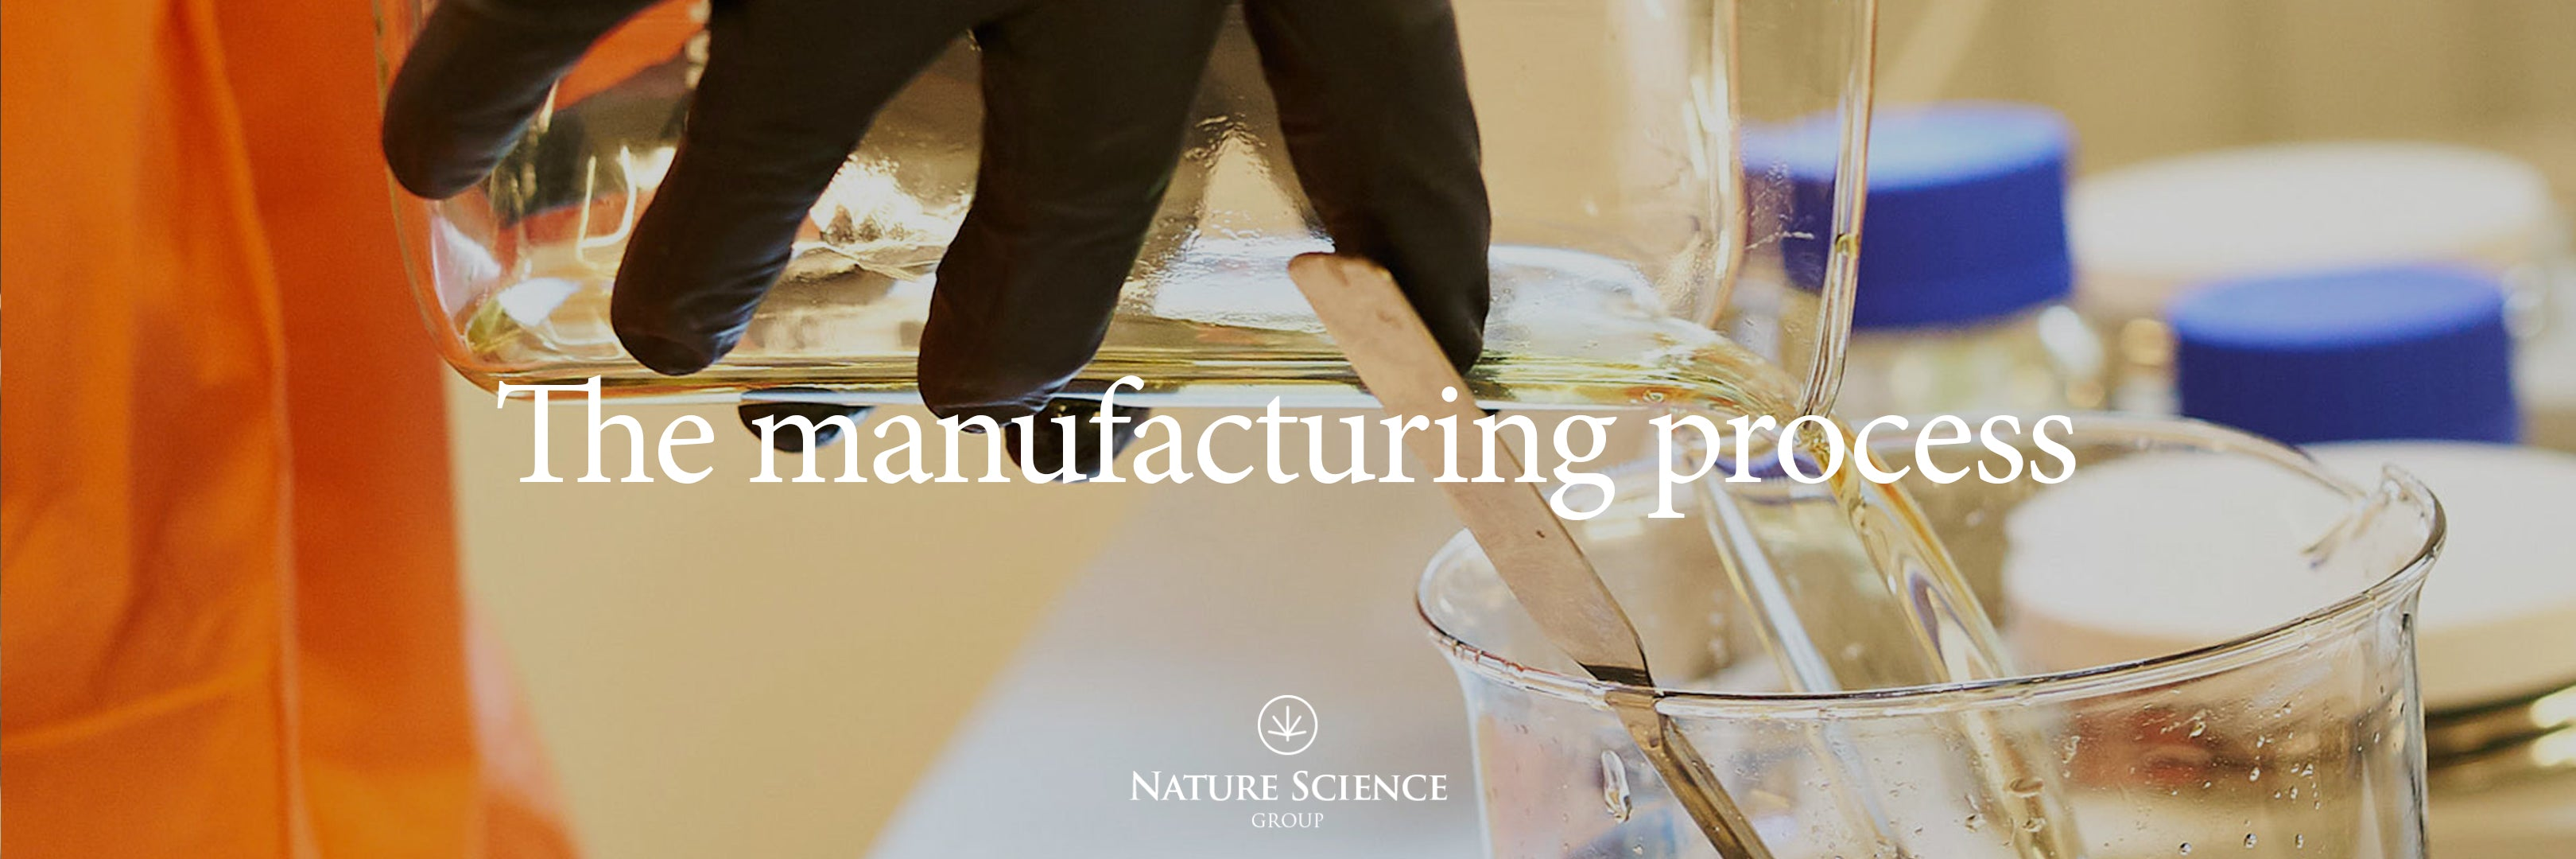 Nature Science Group - Nature Science Manufacturing Process